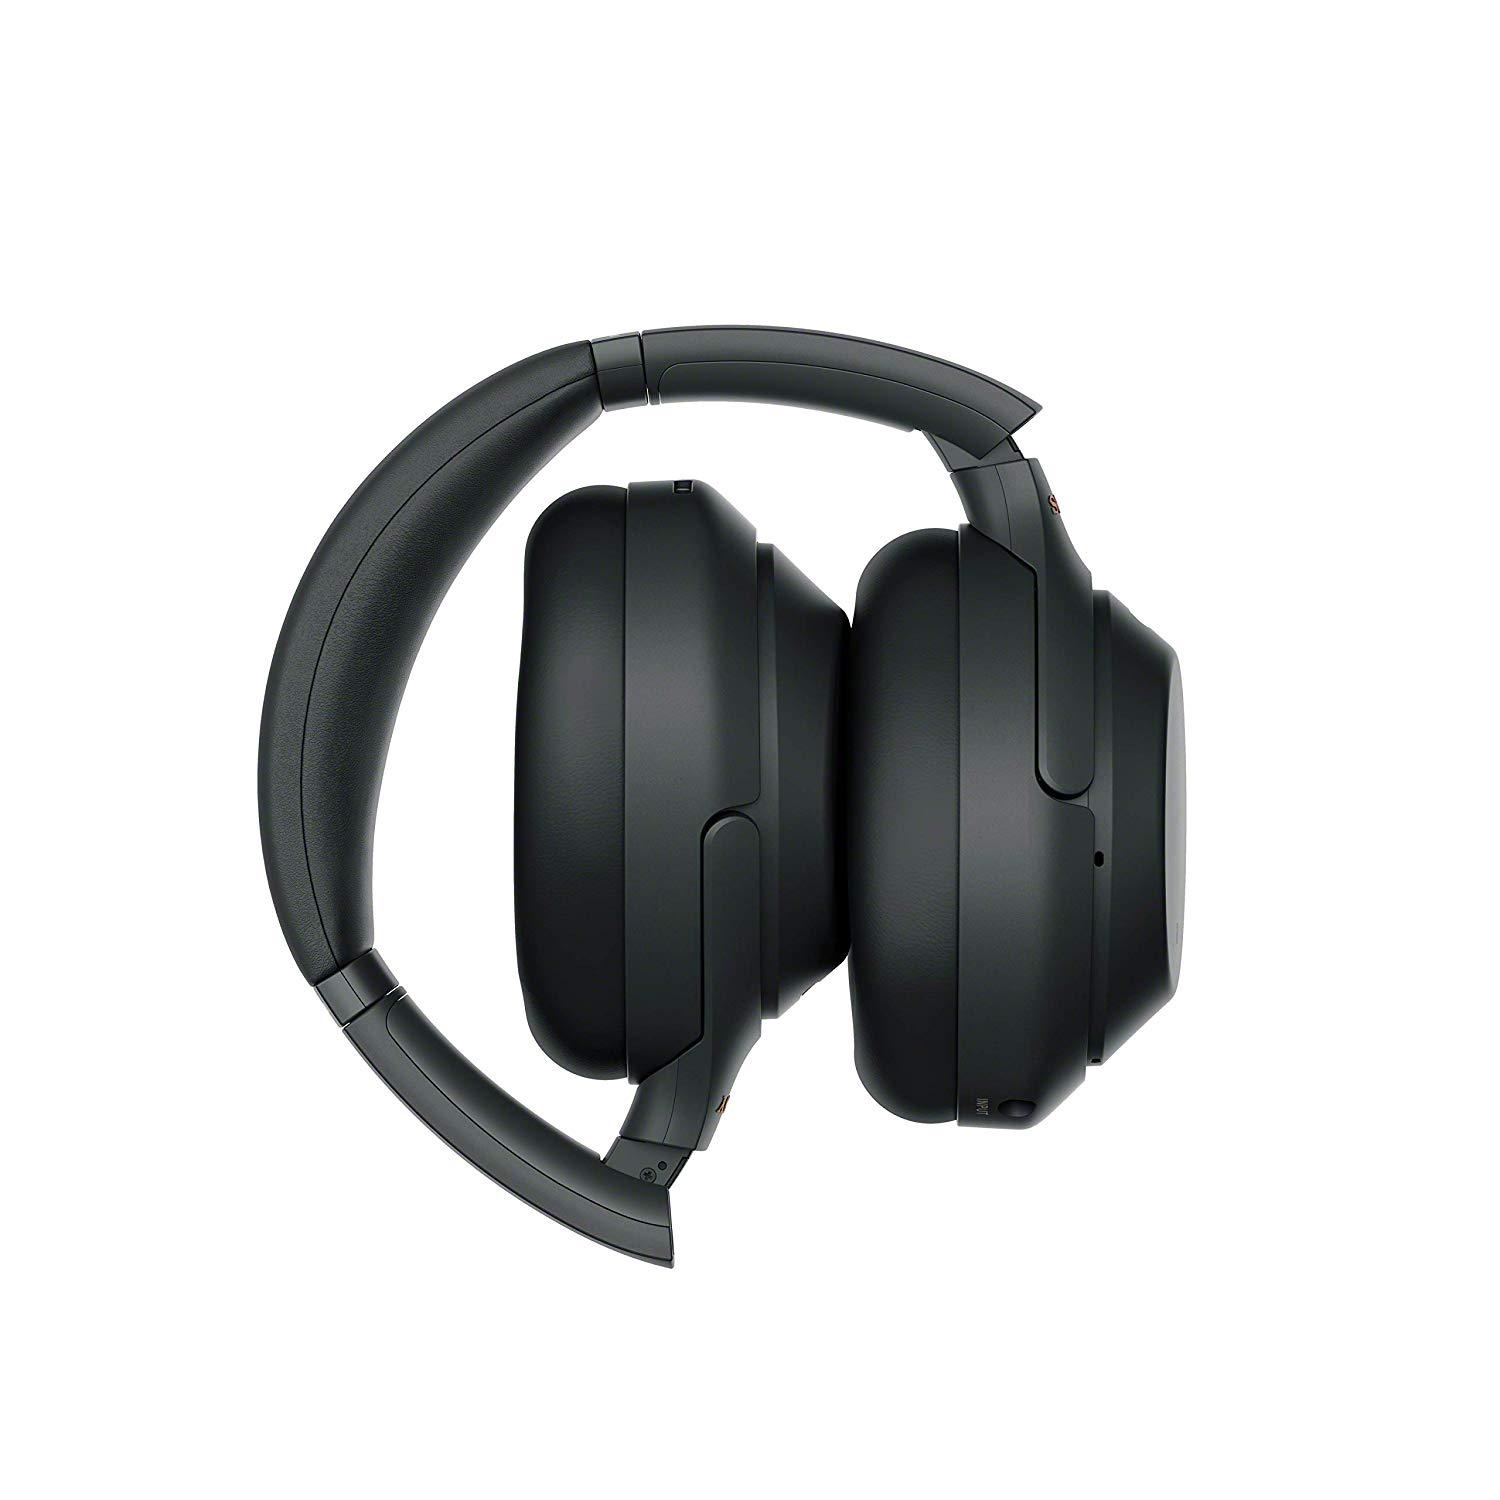 sony headphones with flexibility